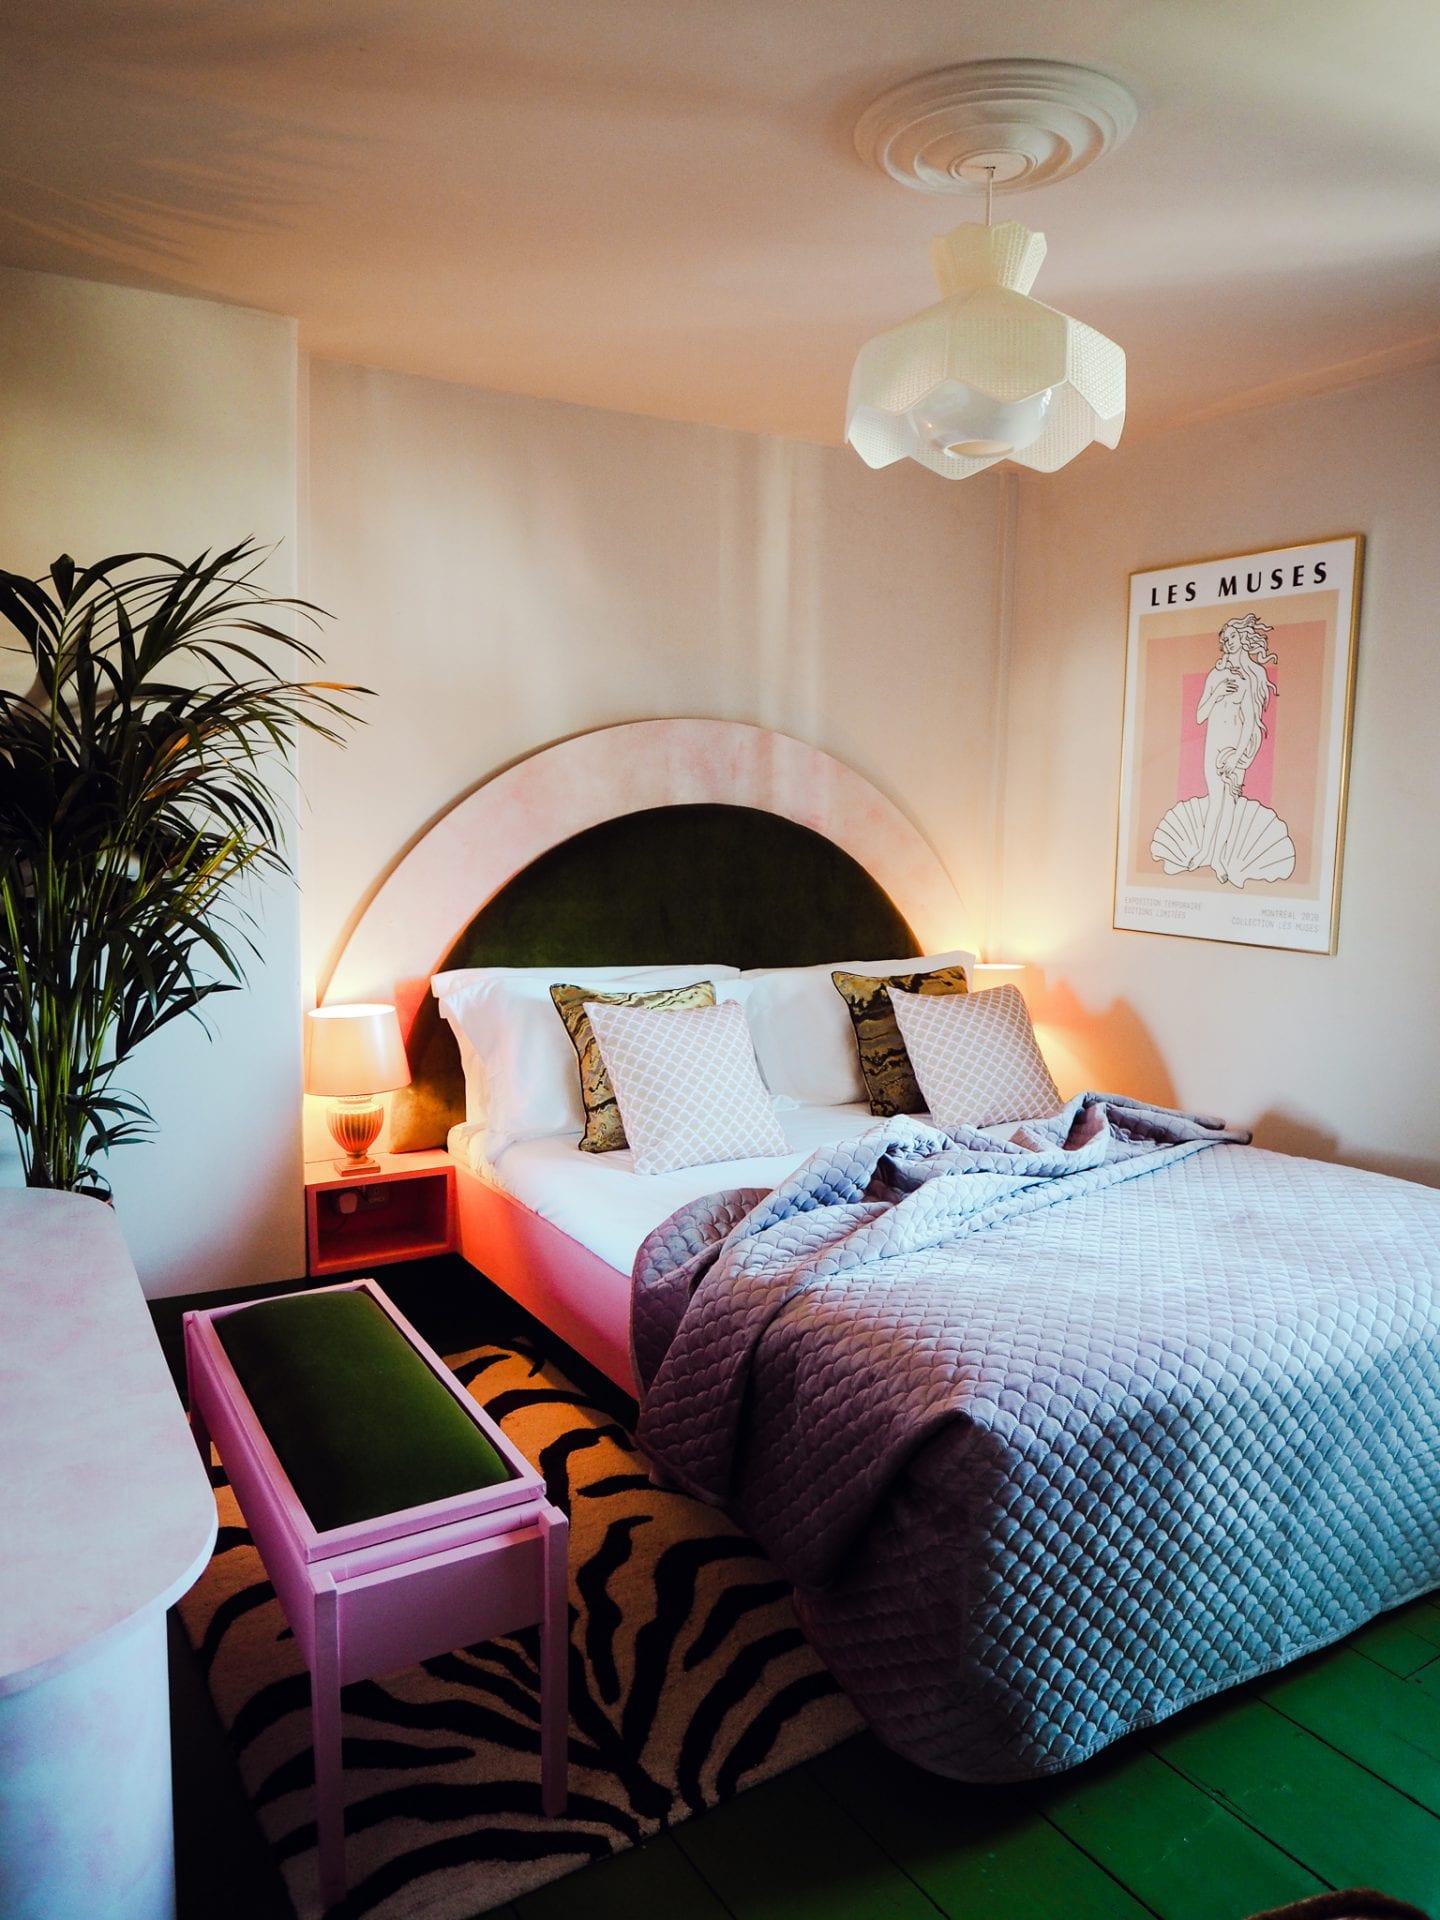 george-and-heart-margate-kent-les-muses-round-bed-amy-exton